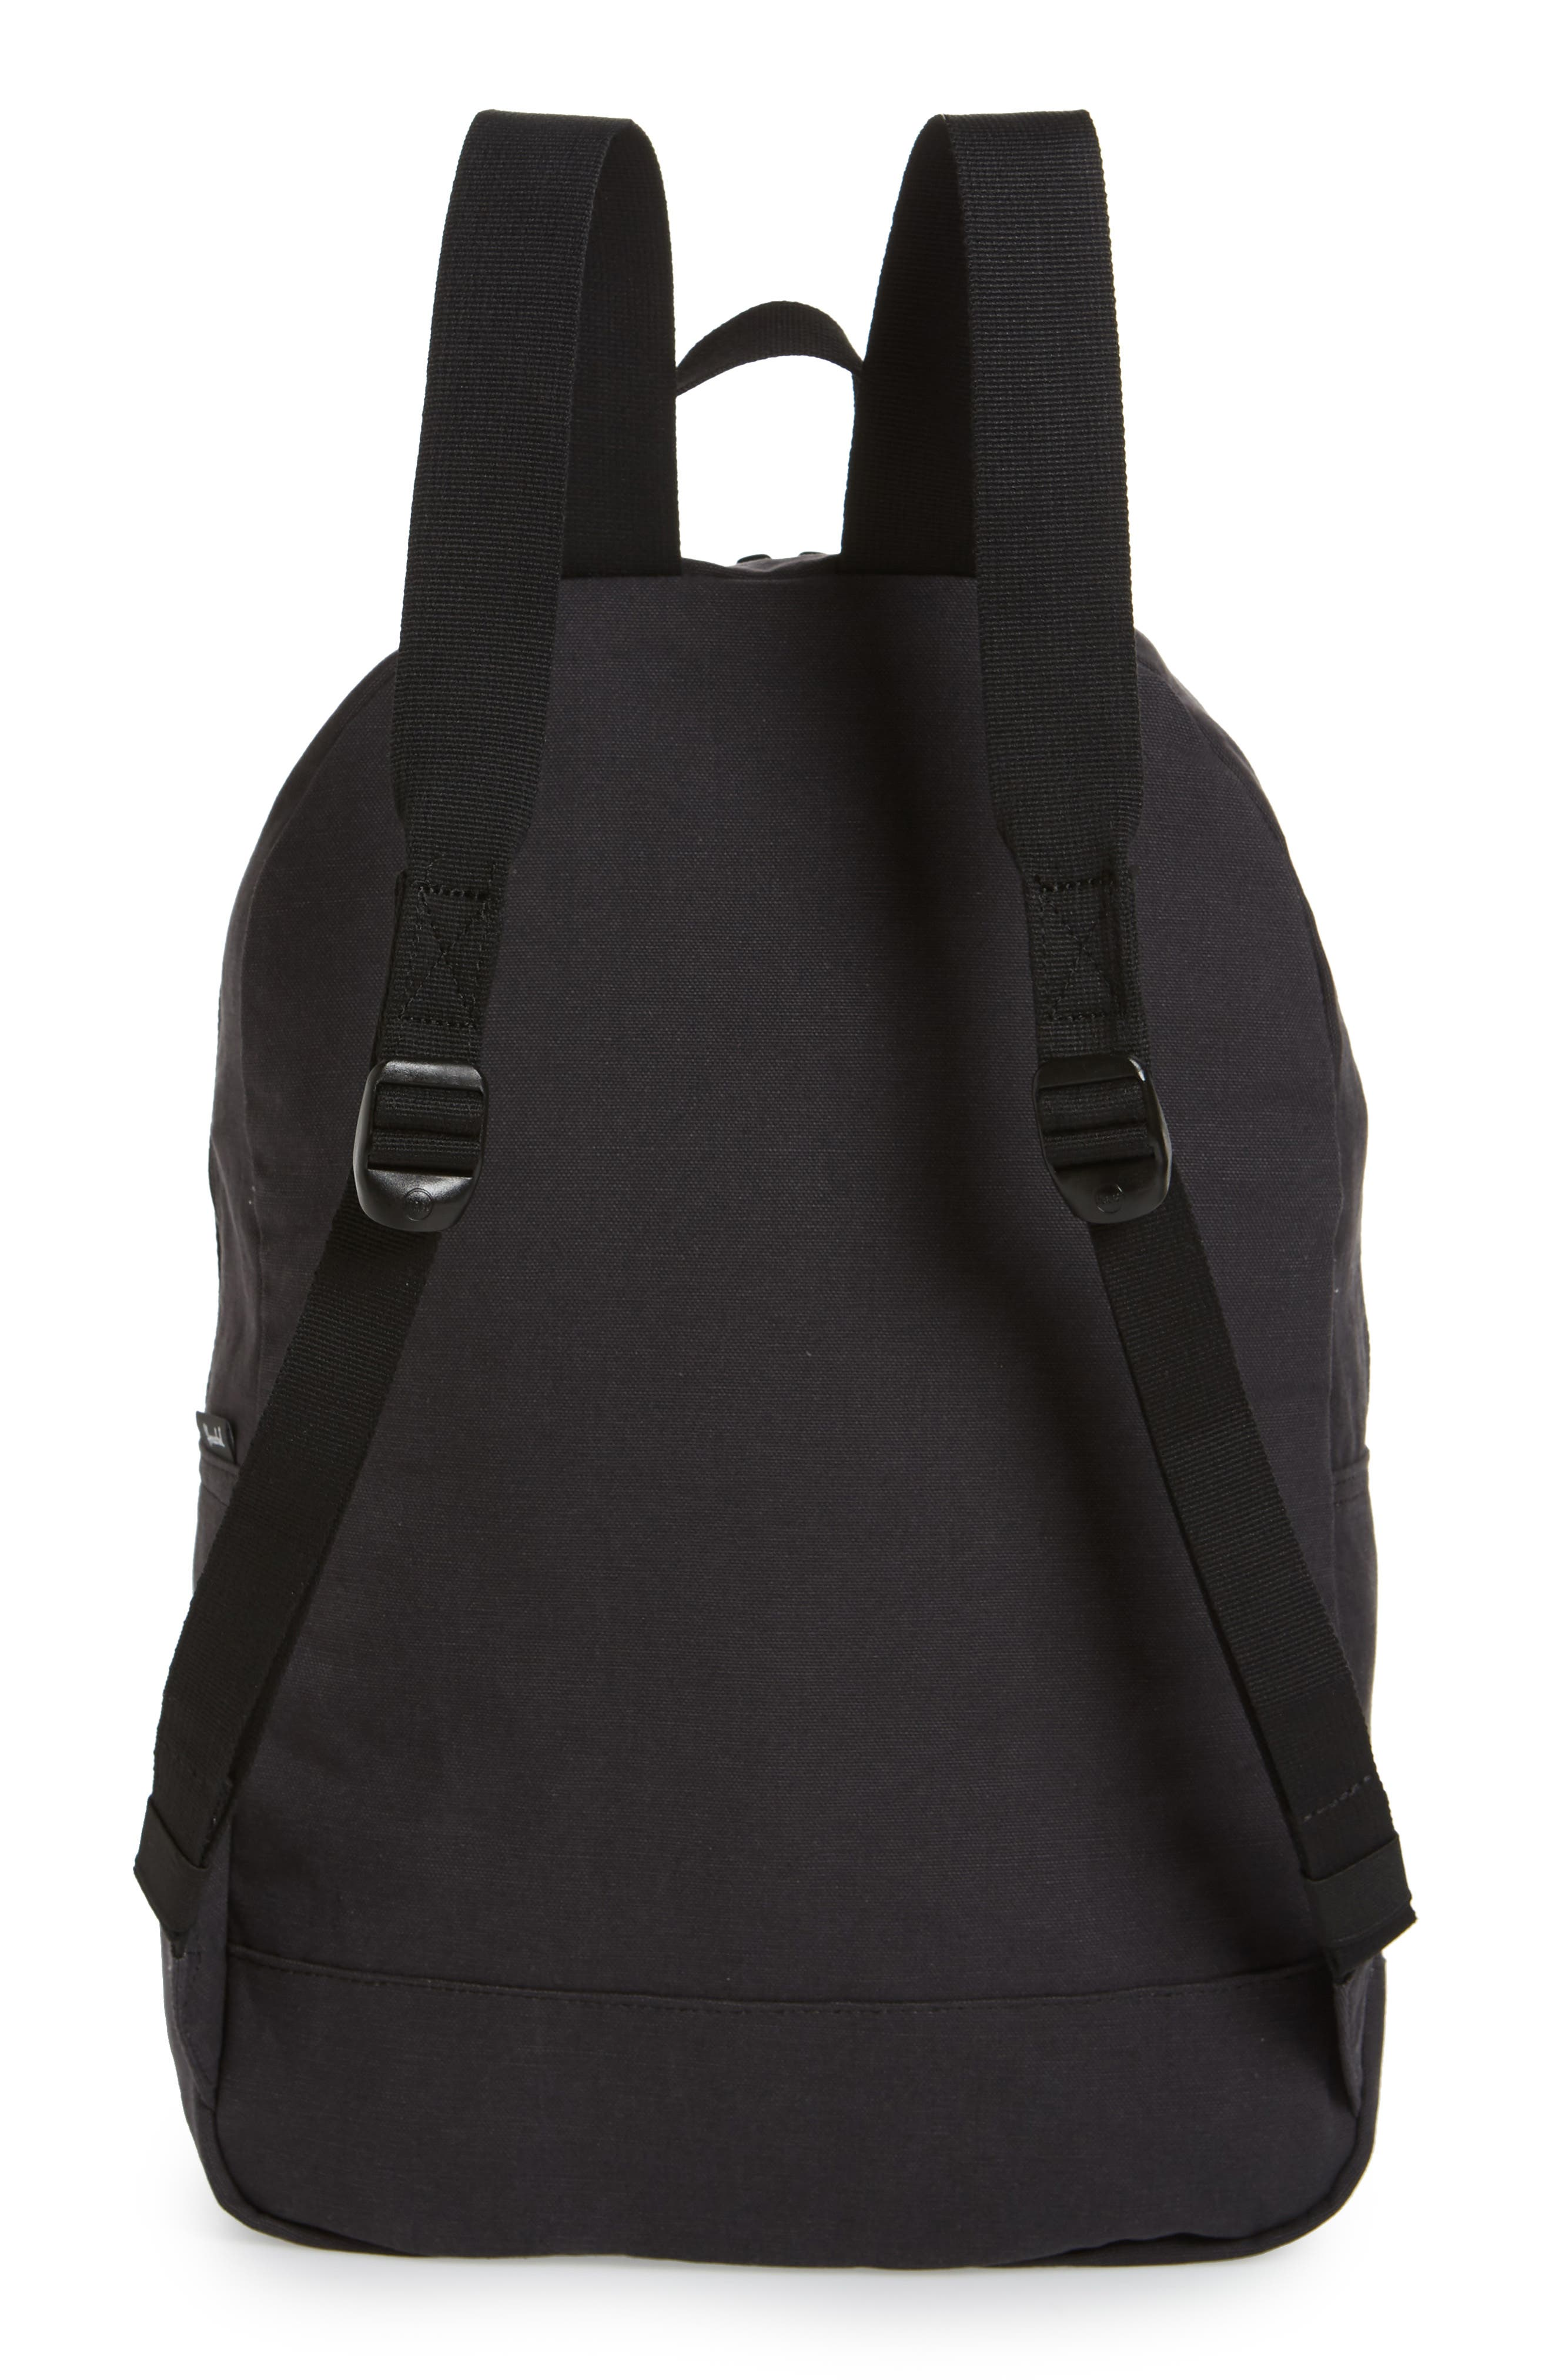 Cotton Casuals Daypack Backpack,                             Alternate thumbnail 19, color,